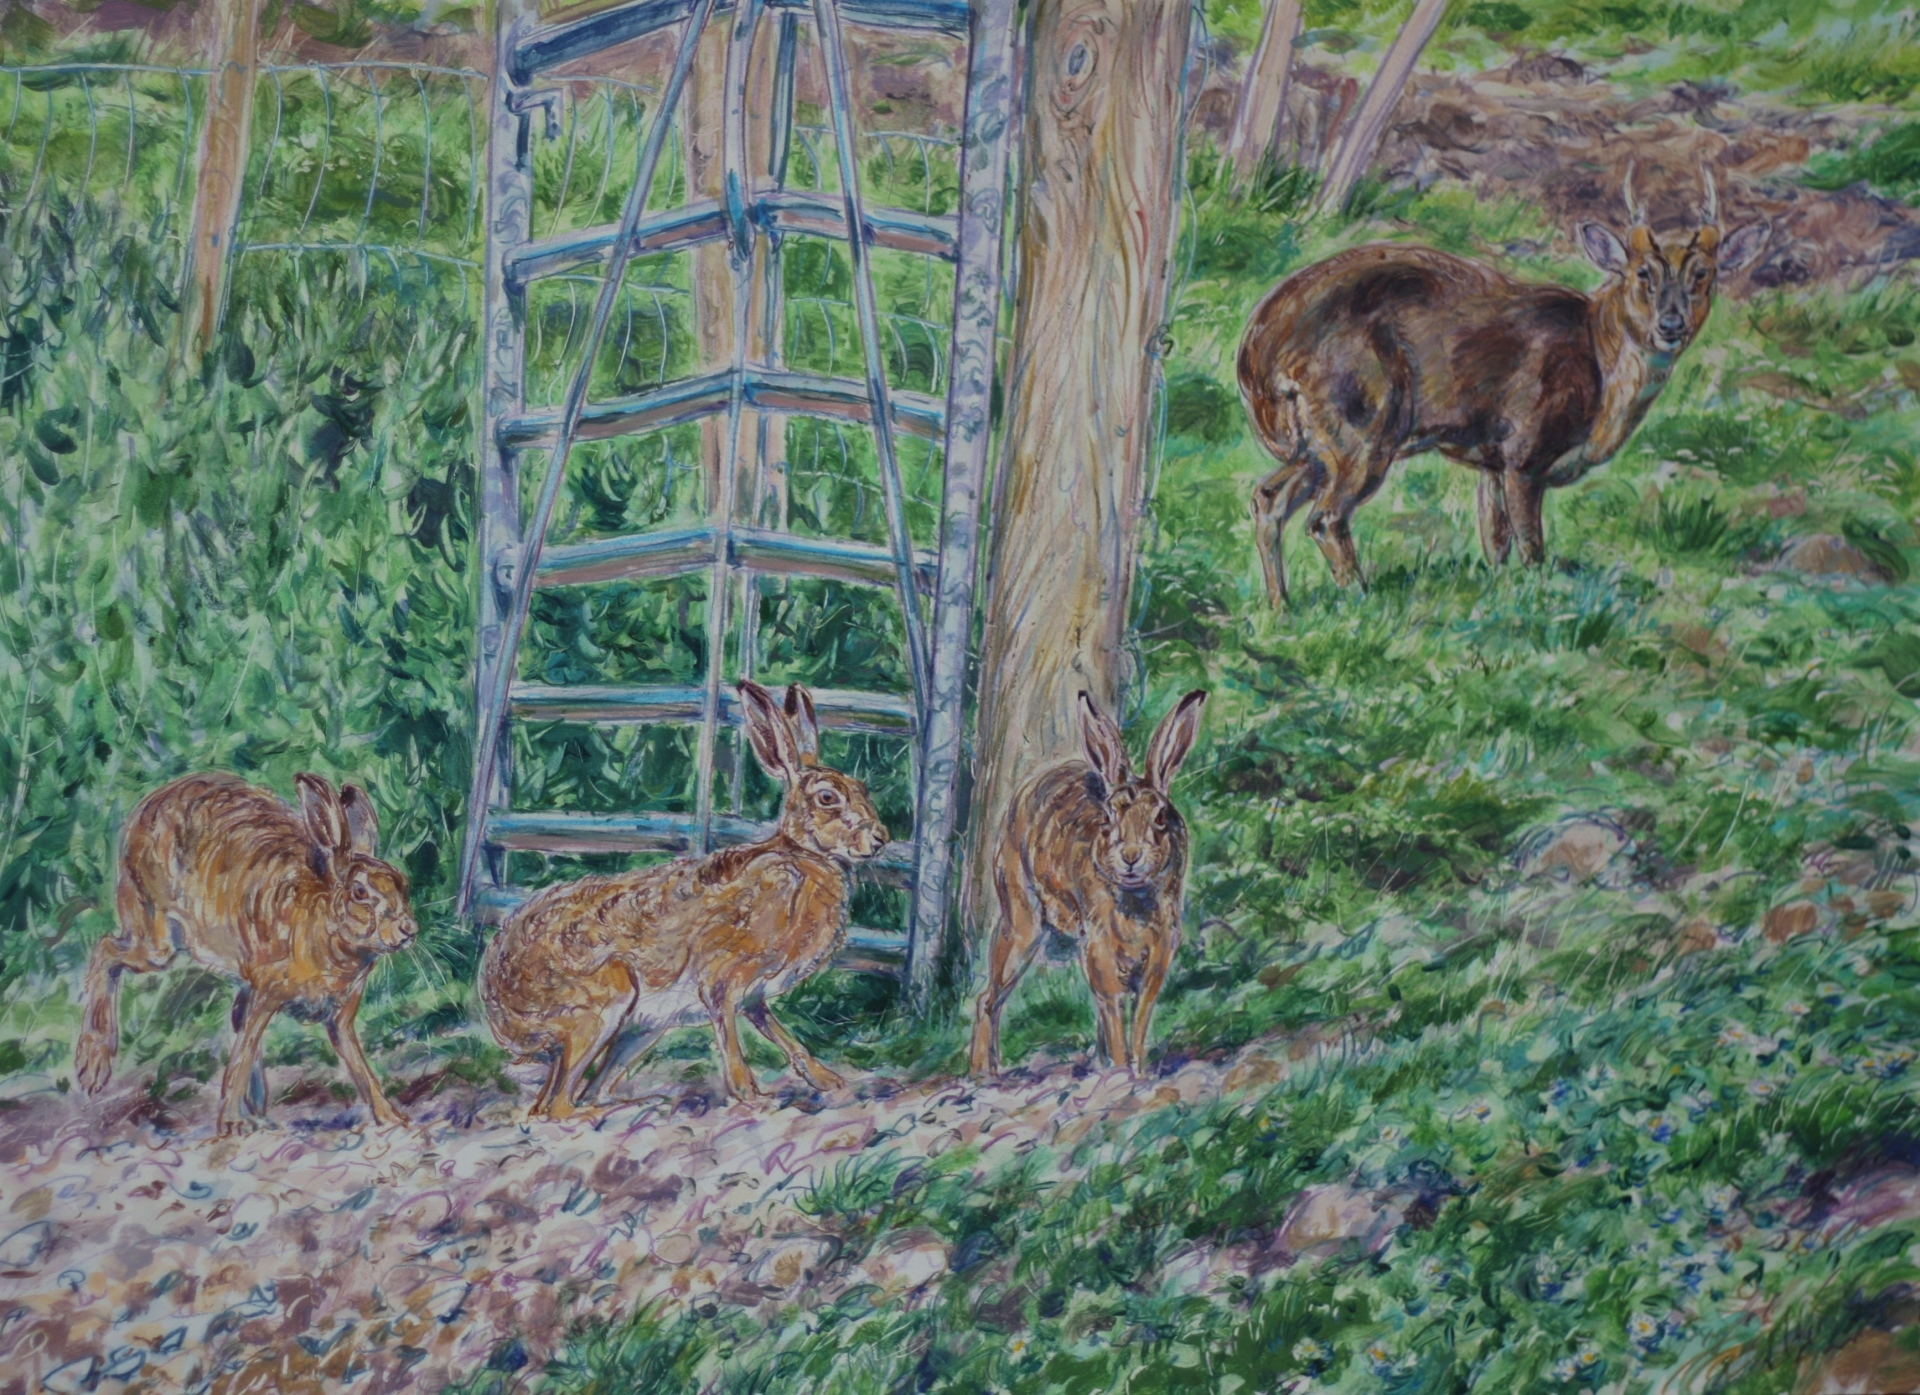 Hares and Muntjac Deer, Stumpshaw Marsh, Norfolk